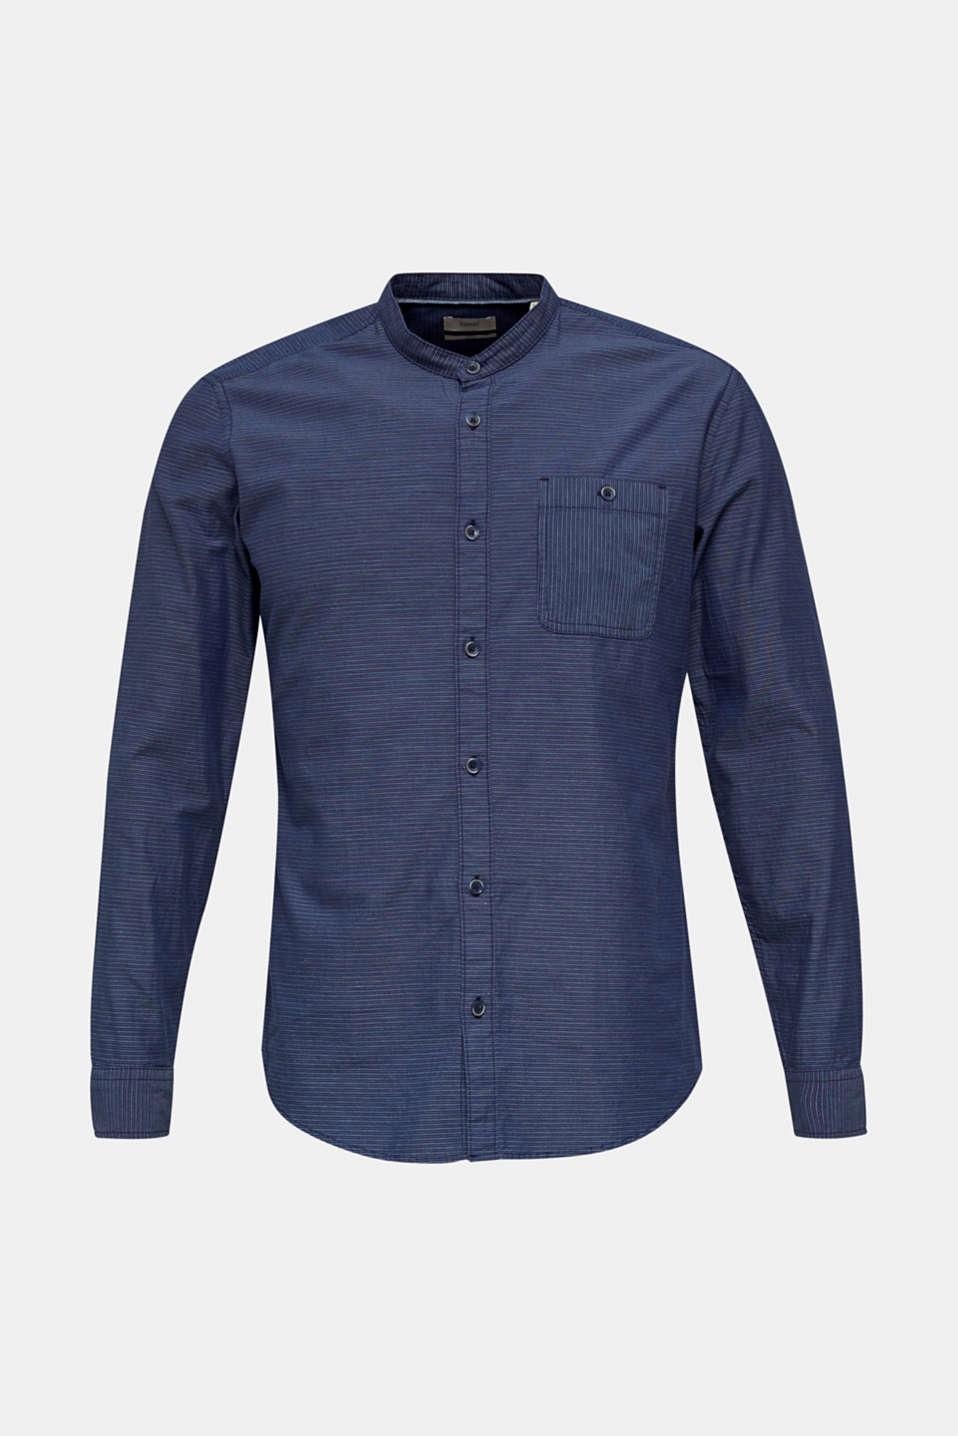 Shirt with band collar, 100% cotton, DARK BLUE 3, detail image number 6